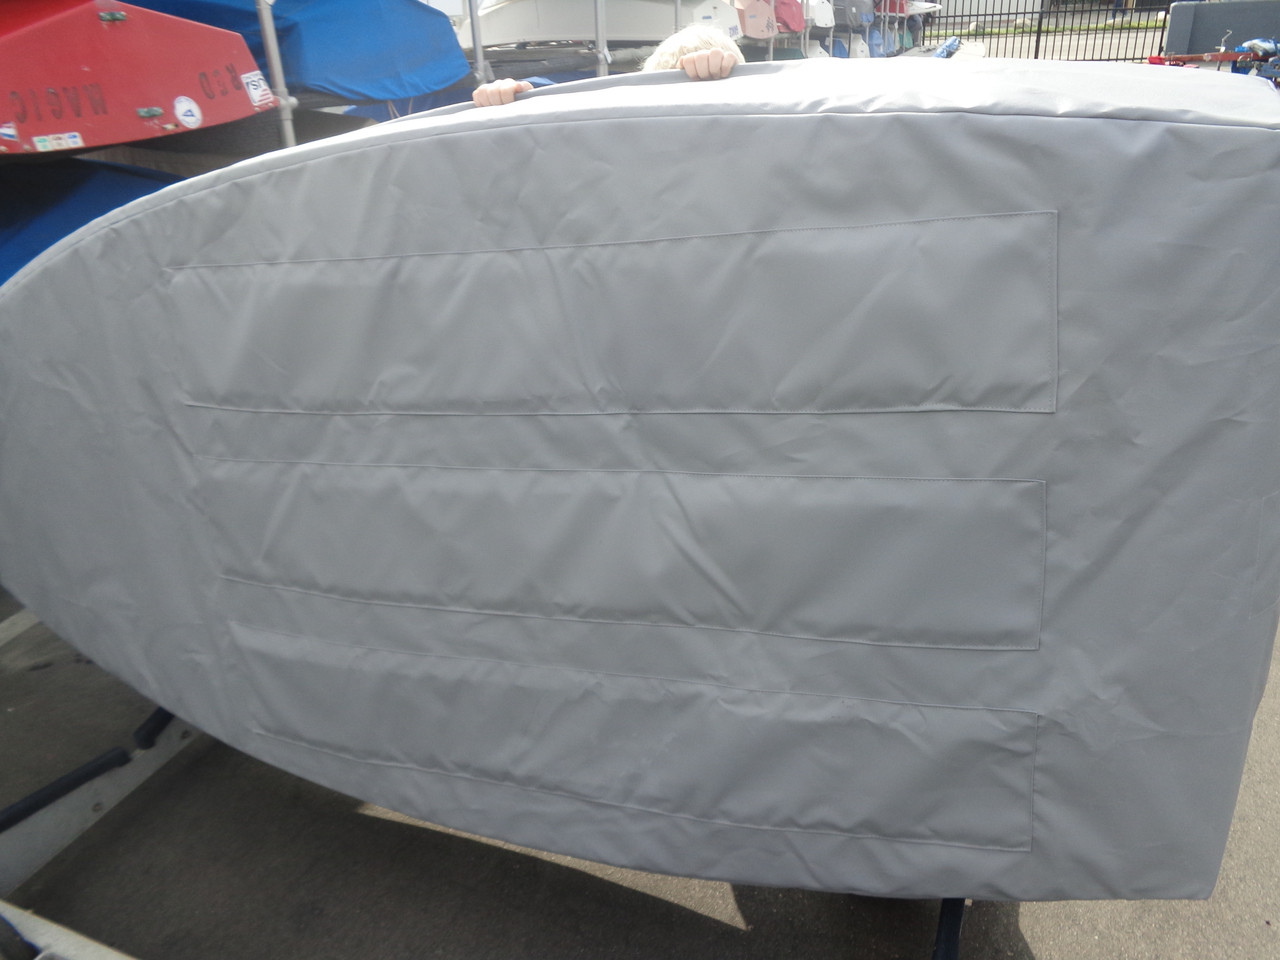 Opti Sailboat Padded Hull Cover made in America by skilled artisans at SLO Sail and Canvas.